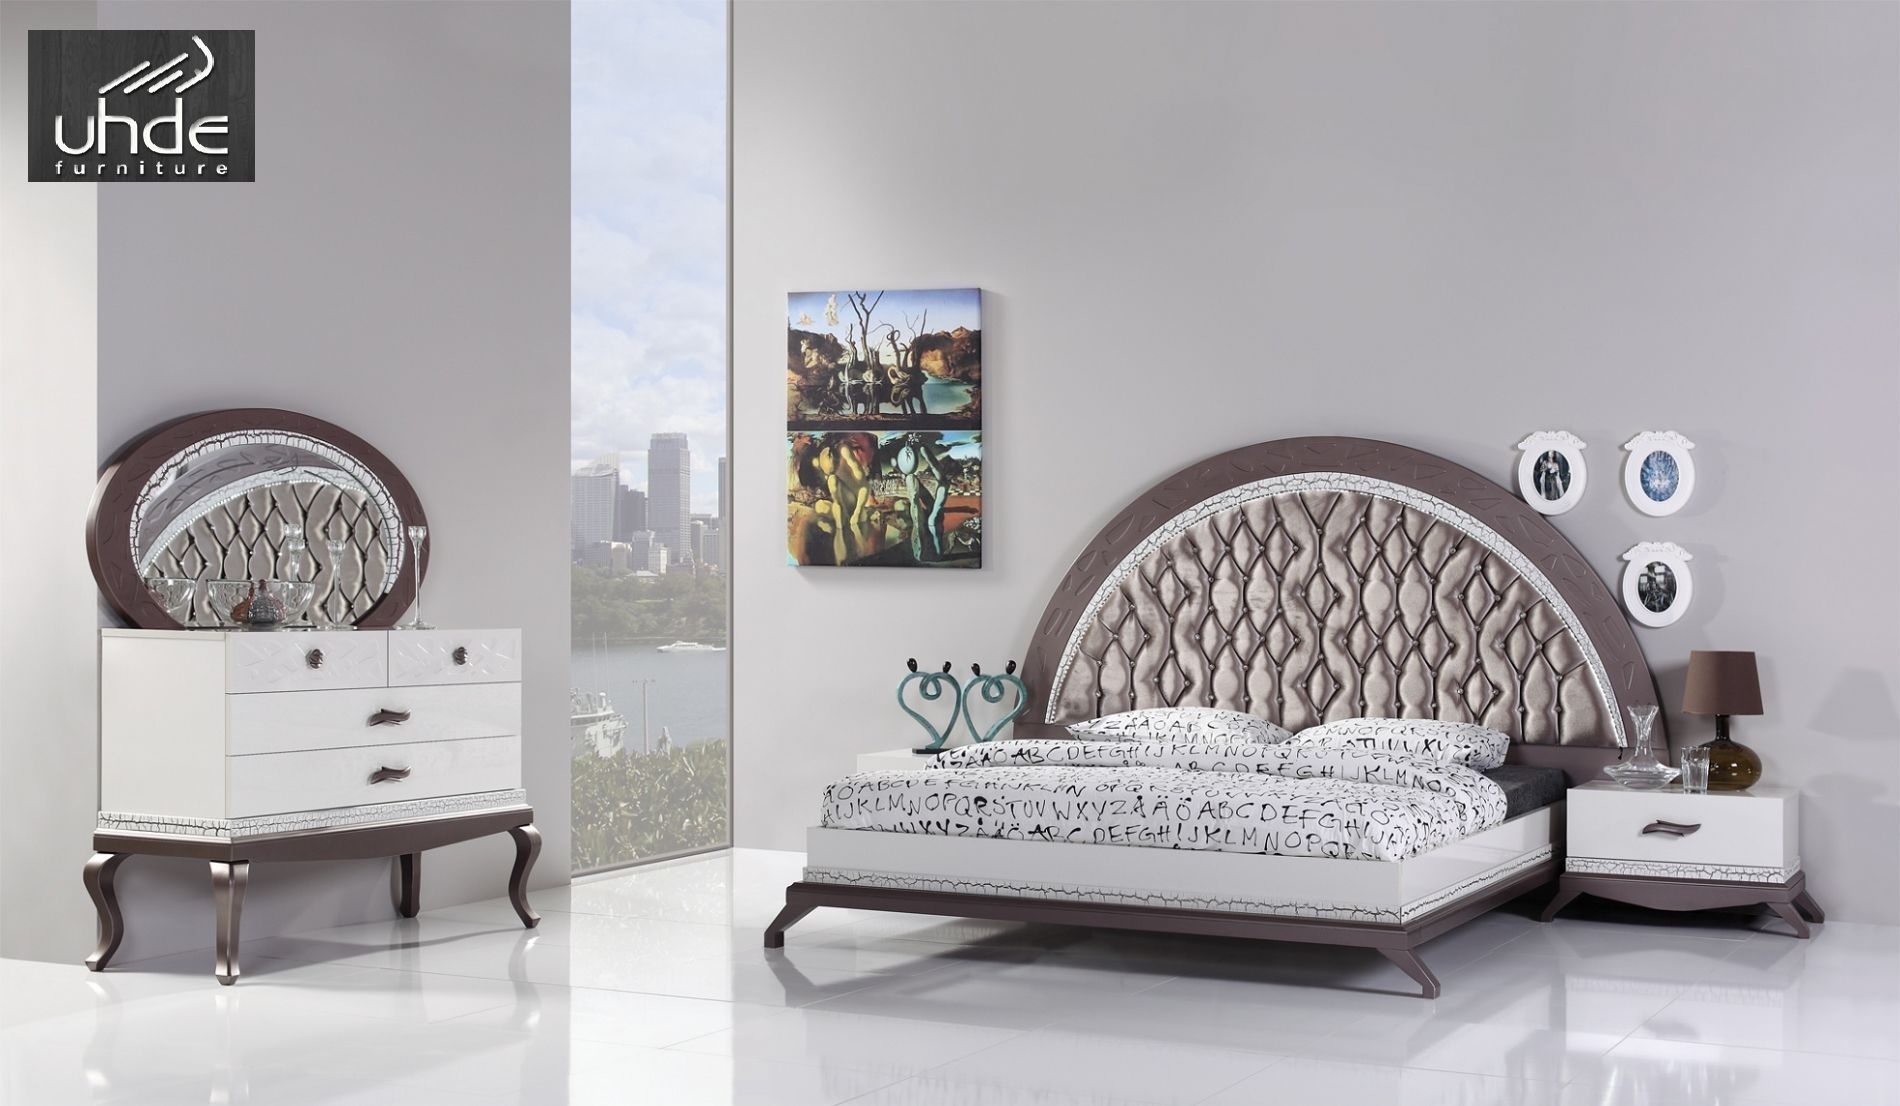 contemporary furniture manufacturers. Uhde Was Established As A Manufacturer Of Avangarde And Contemporary Furniture In Inegol, Turkey. Manufacturers I